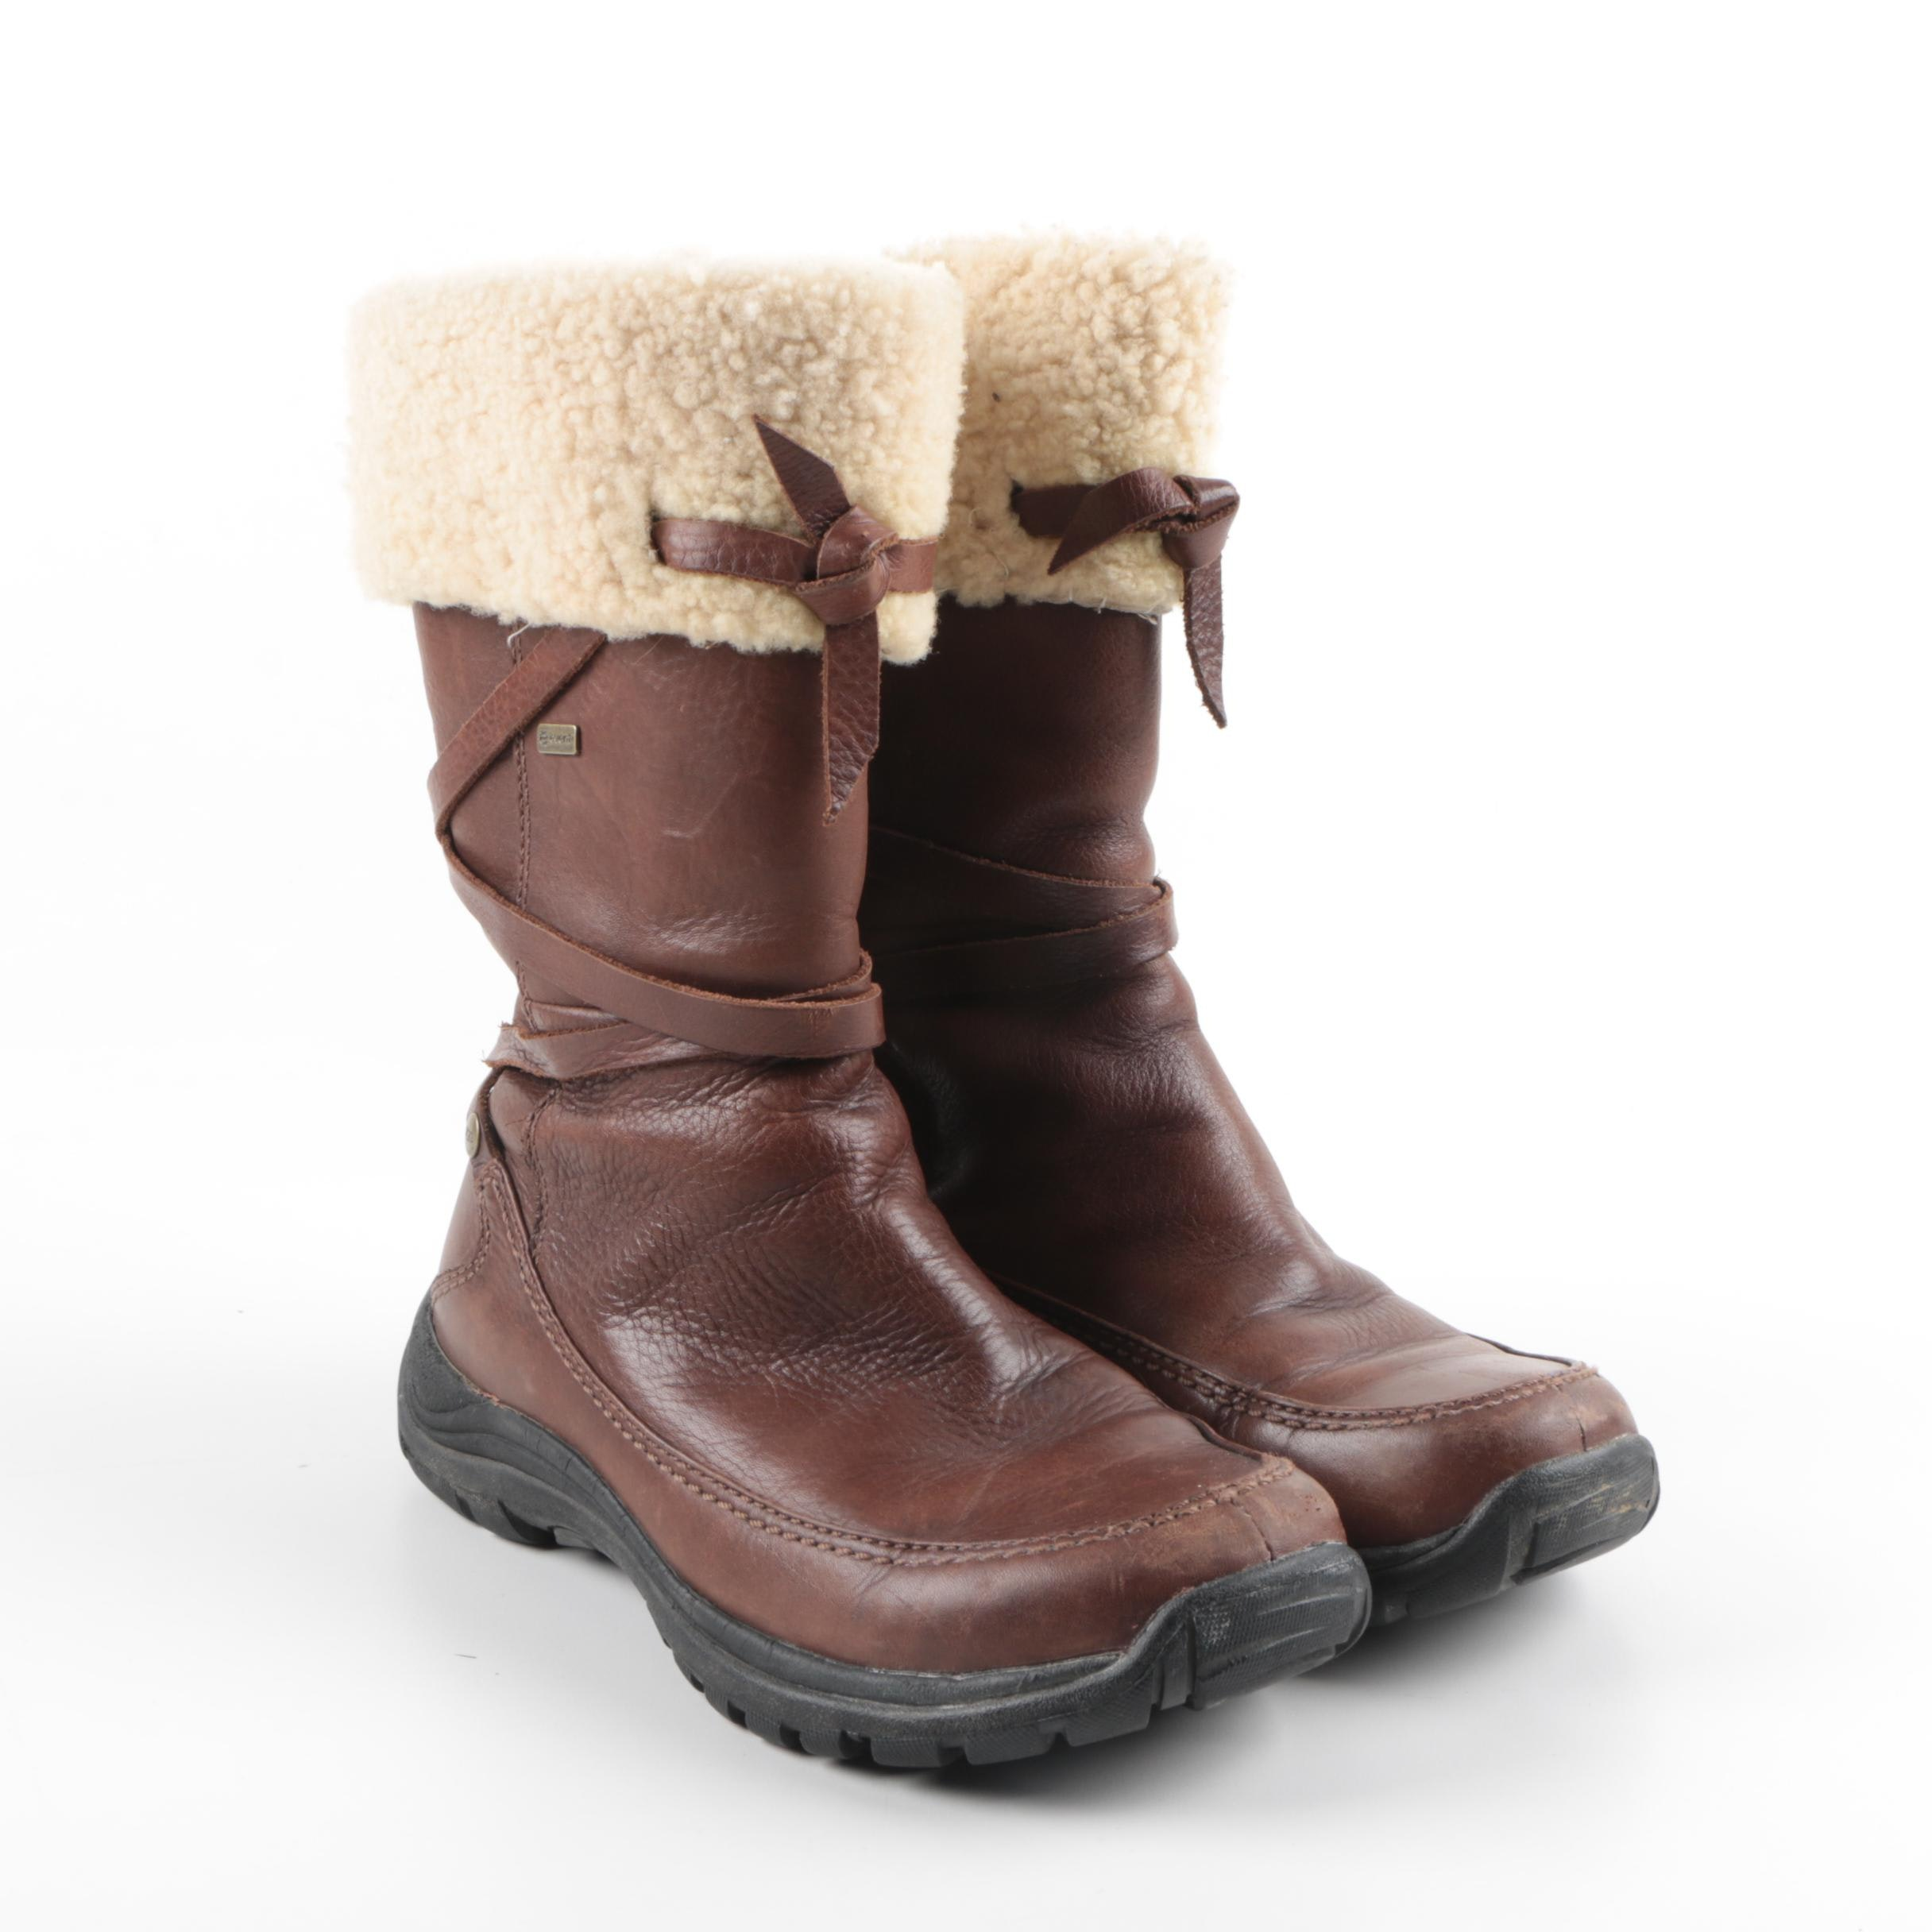 UGG Australia Brown Leather and Shearling Boots